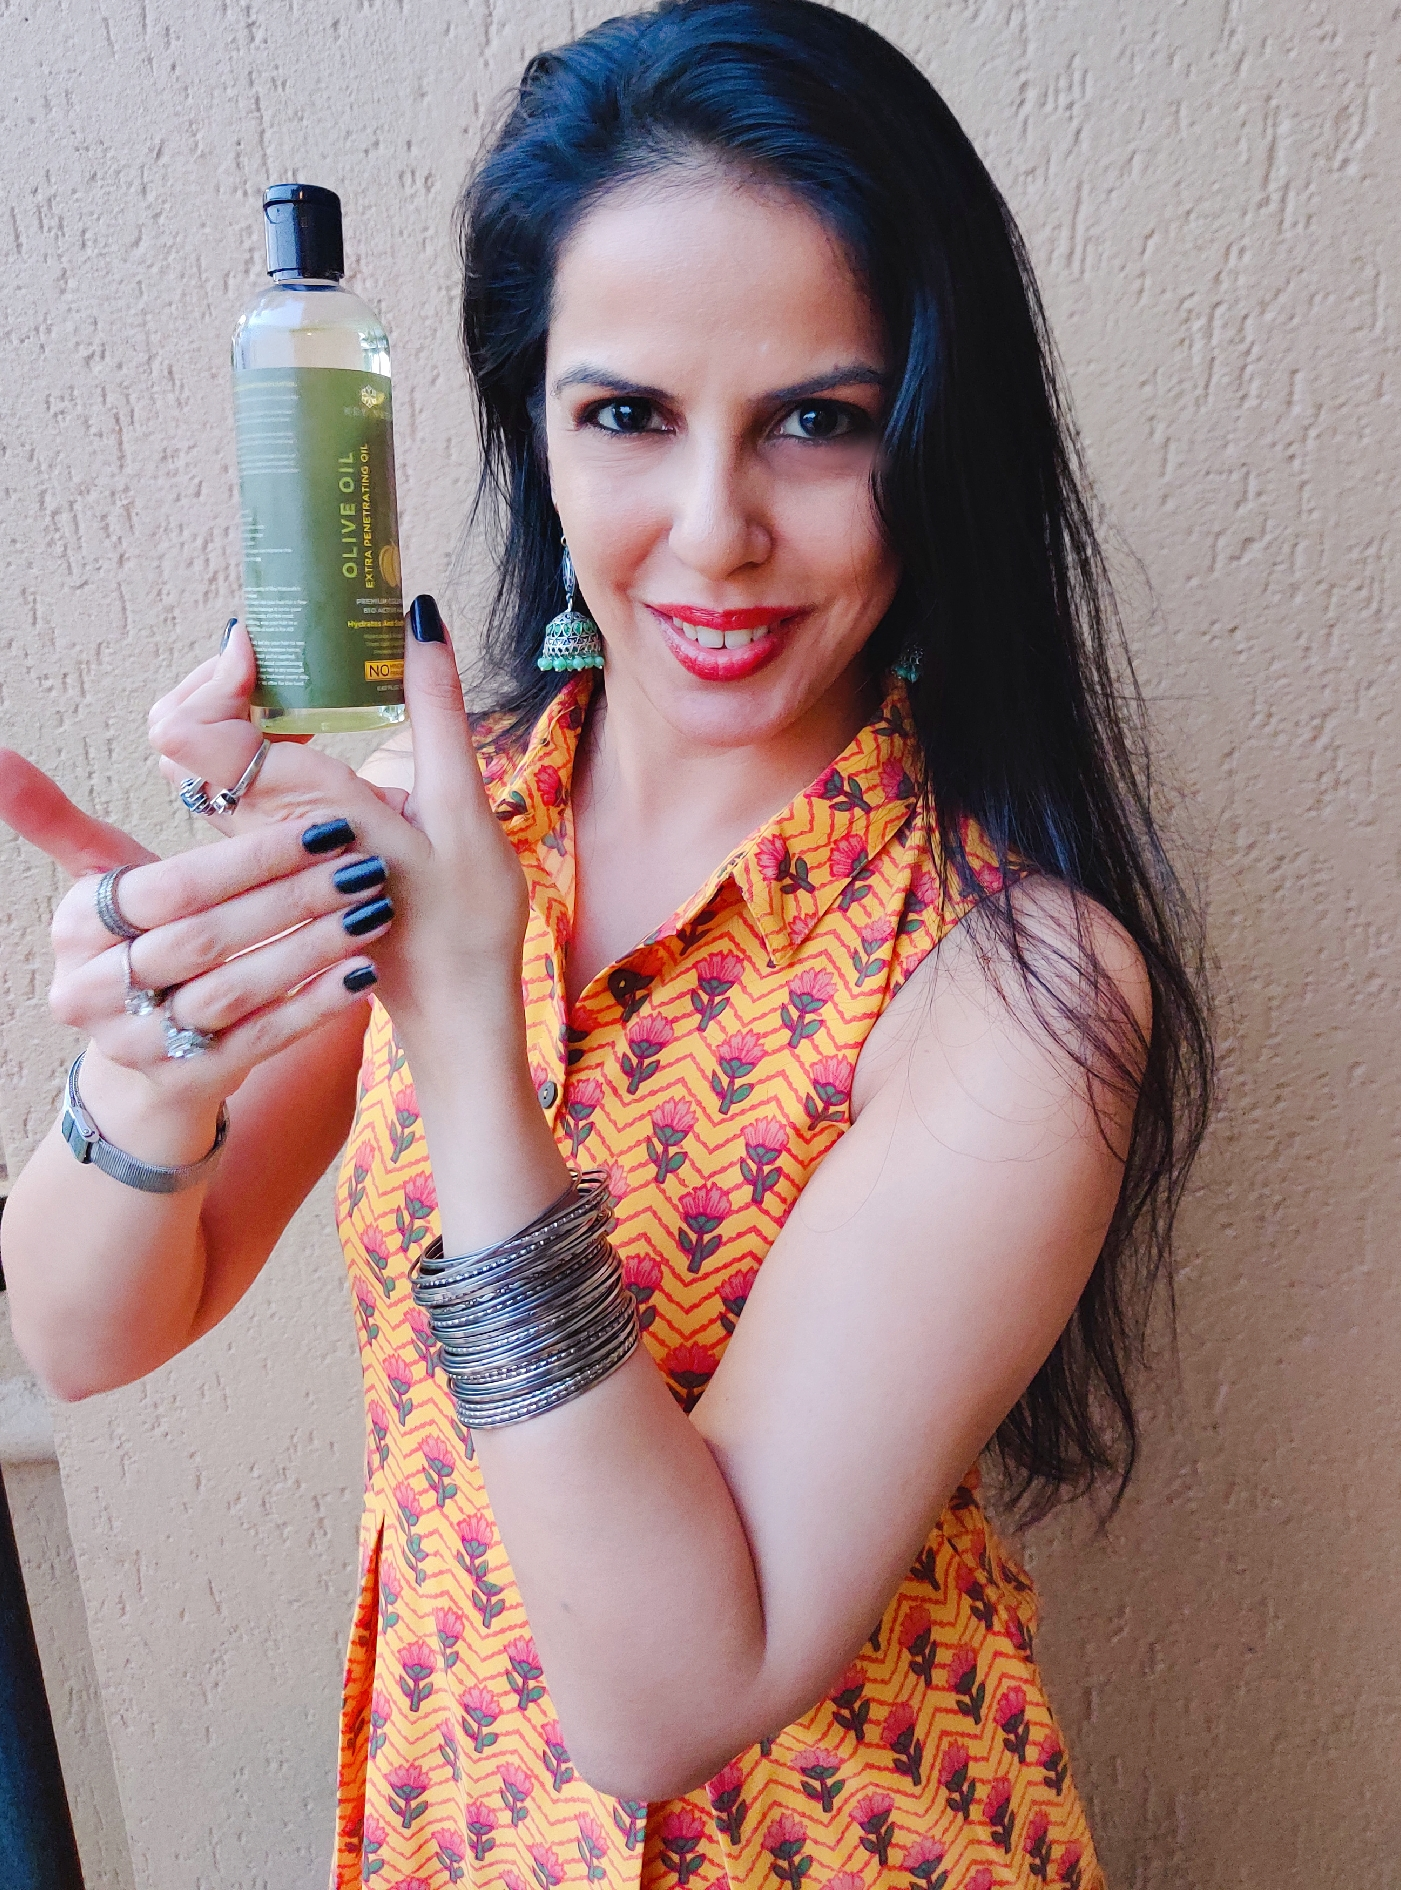 Rey Naturals Pure Cold Pressed Therapeutic Grade Olive Oil For Hair And Skin-A great carrier oil both for hair, skin and nails-By taniasuri-2